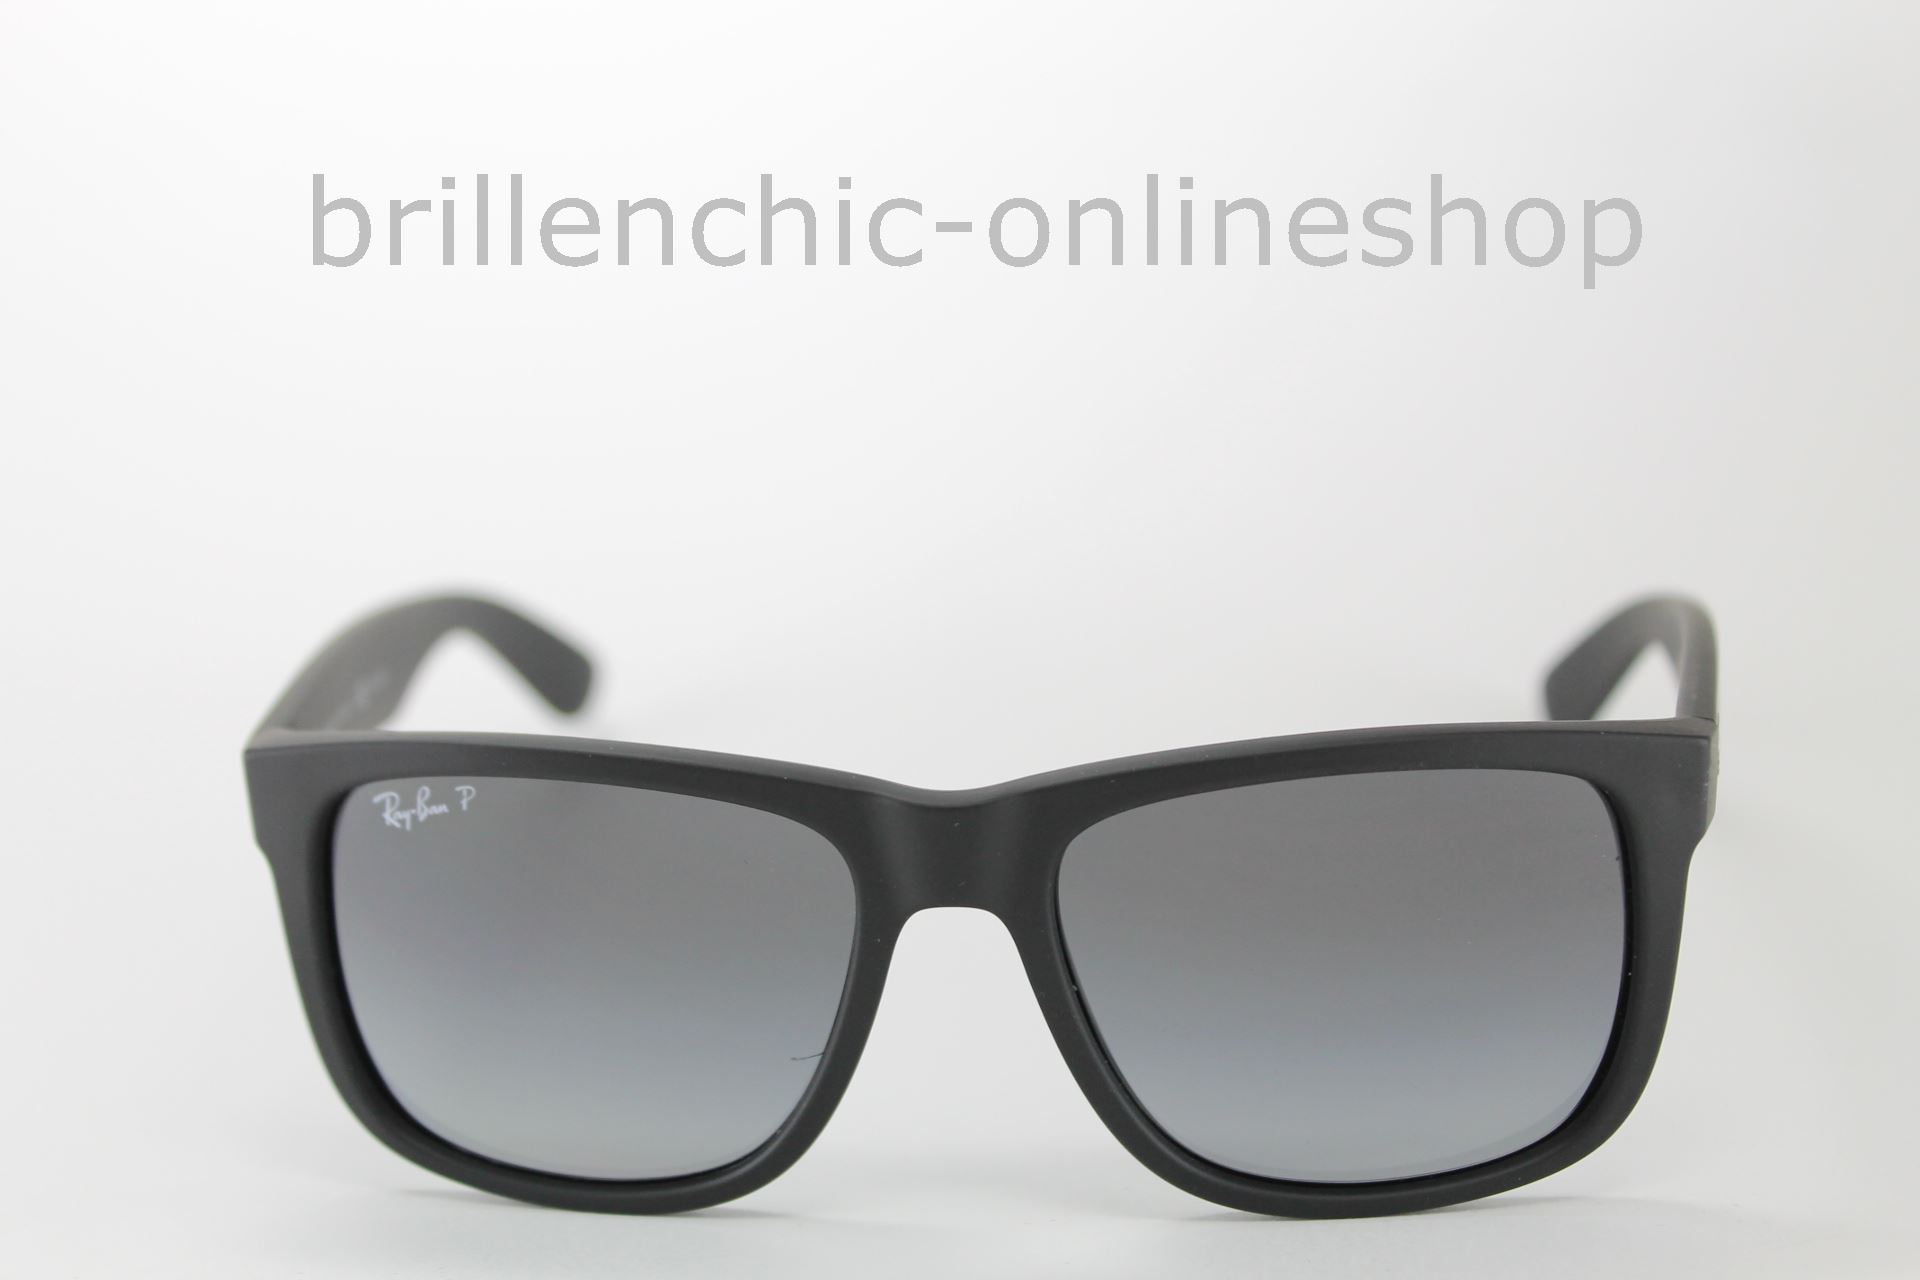 Brillenchic Onlineshop In Berlin Ray Ban Justin Rb 4165